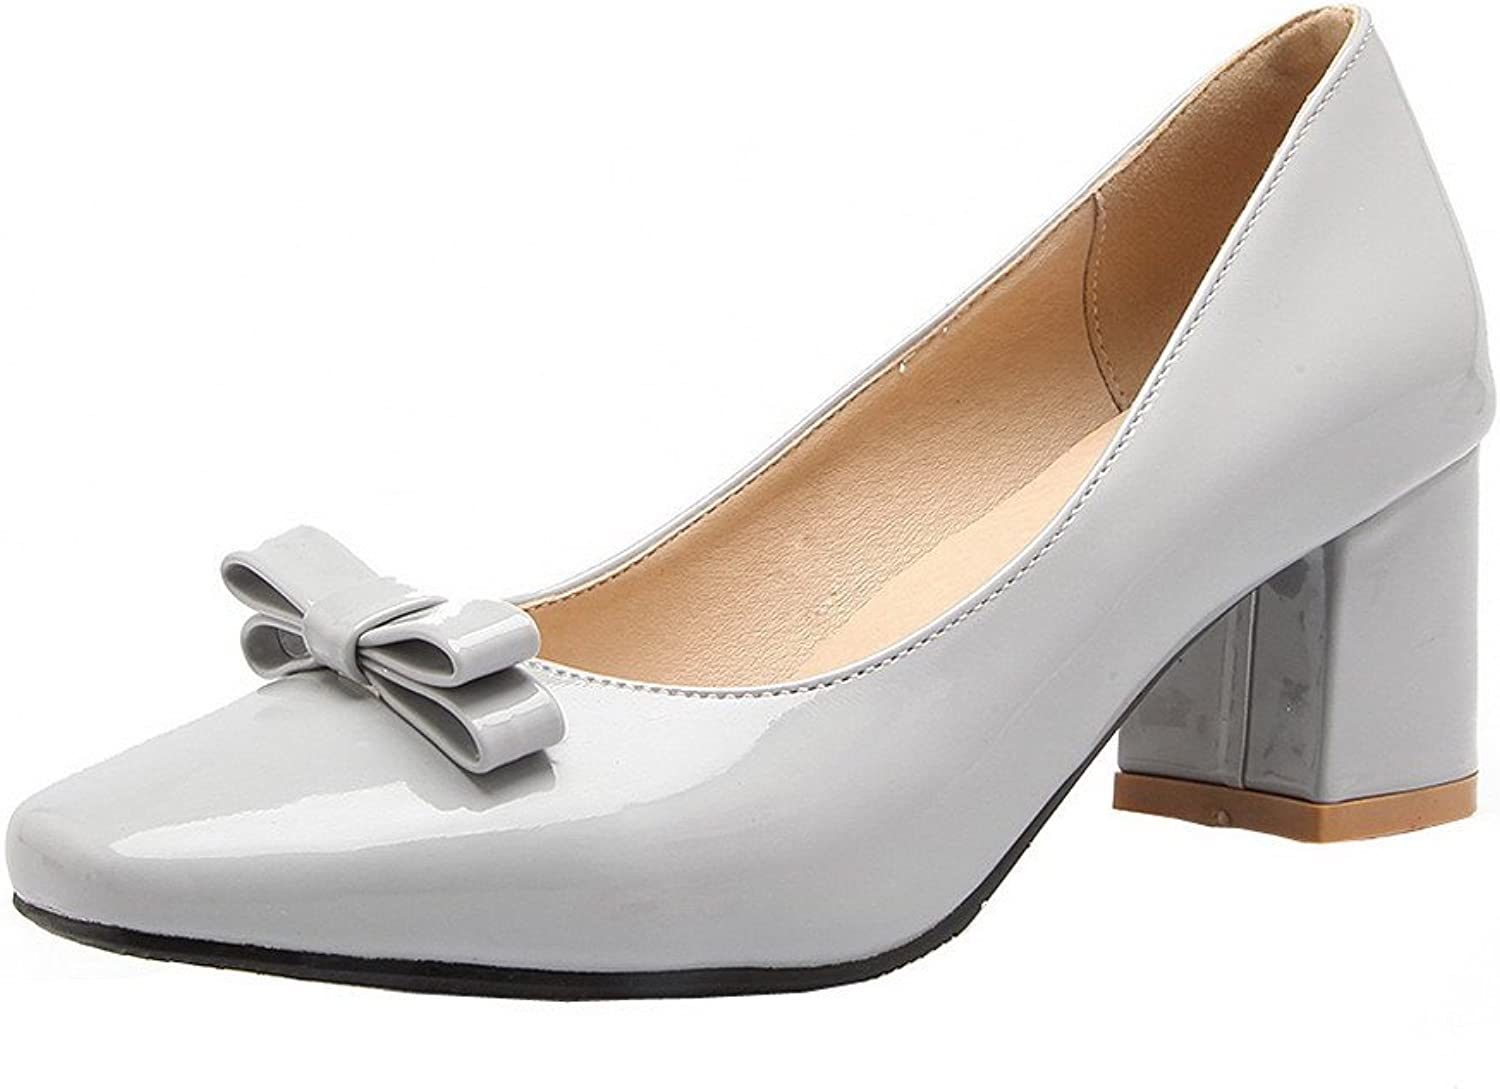 AmoonyFashion Women's Solid Patent Leather Kitten-Heels Square Closed Toe Pumps-shoes